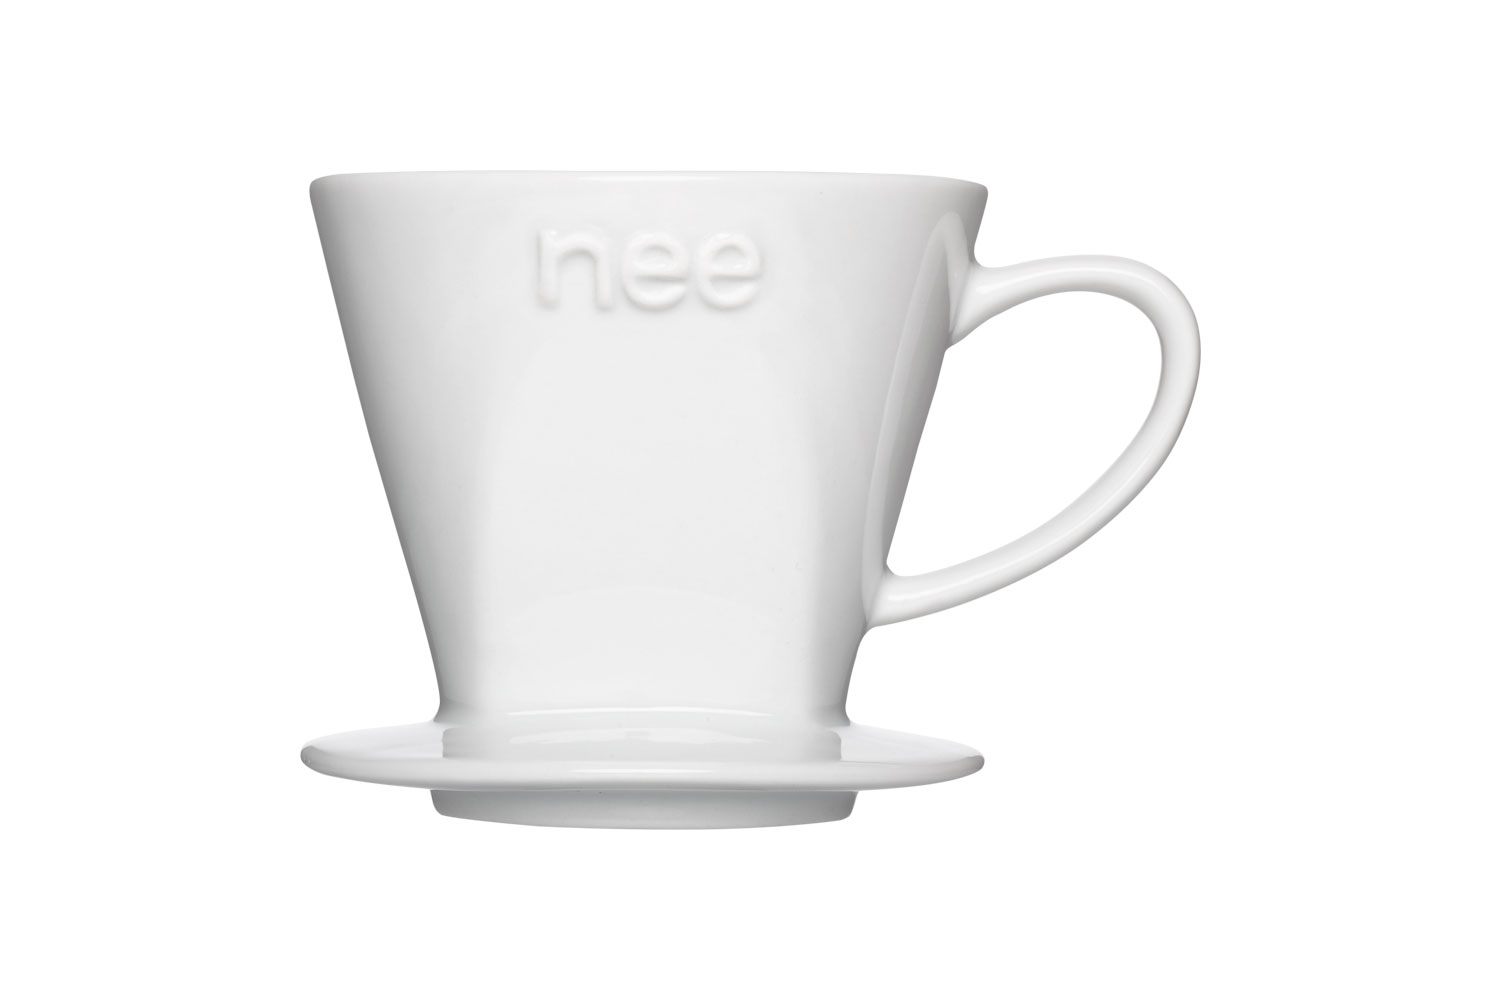 Neecoffee 02 edit